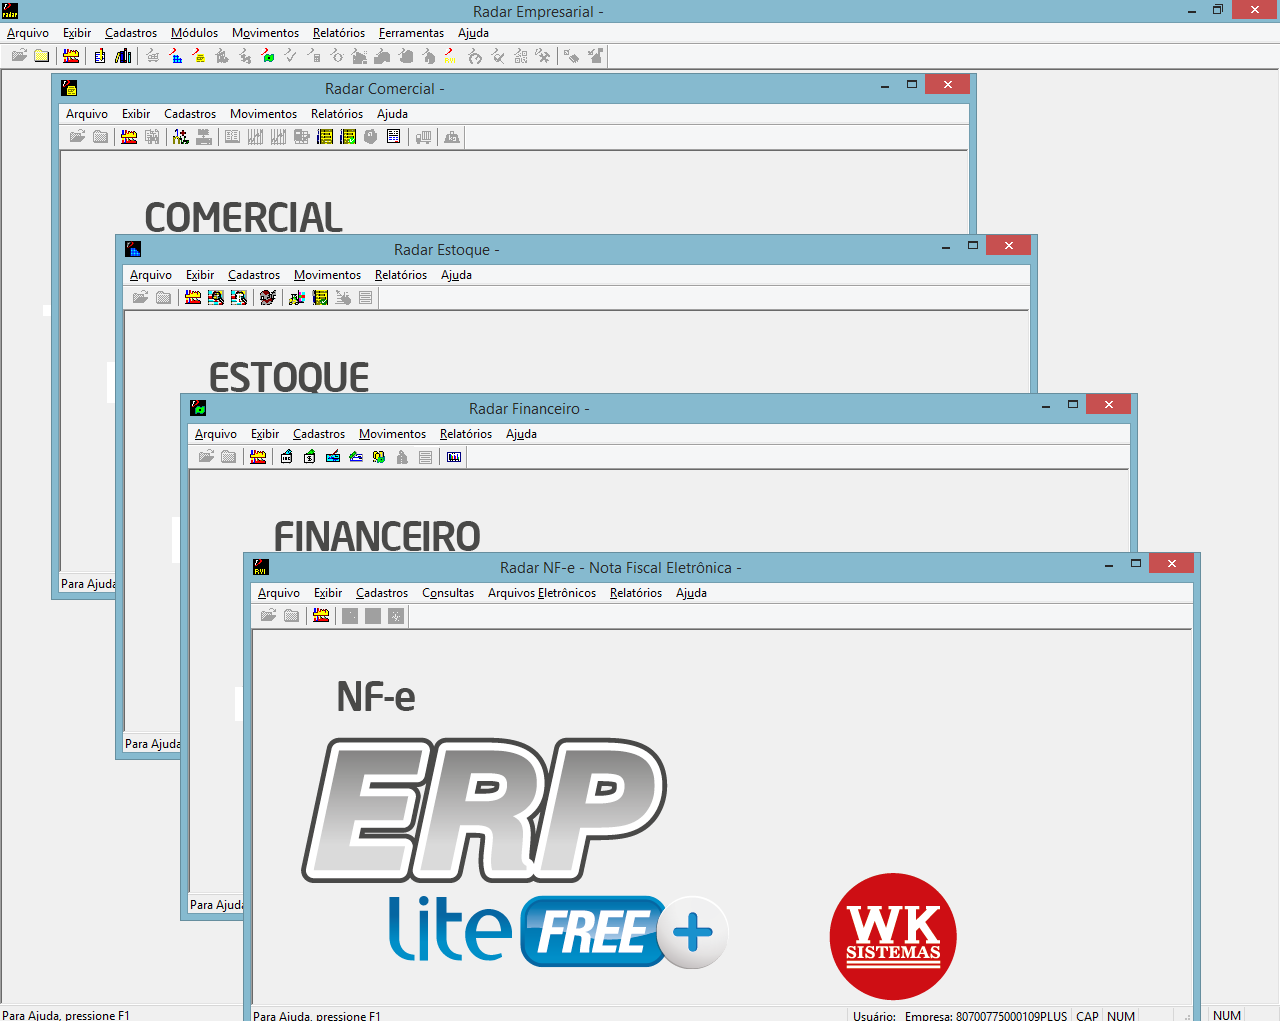 Módulos do ERP Lite Free Plus